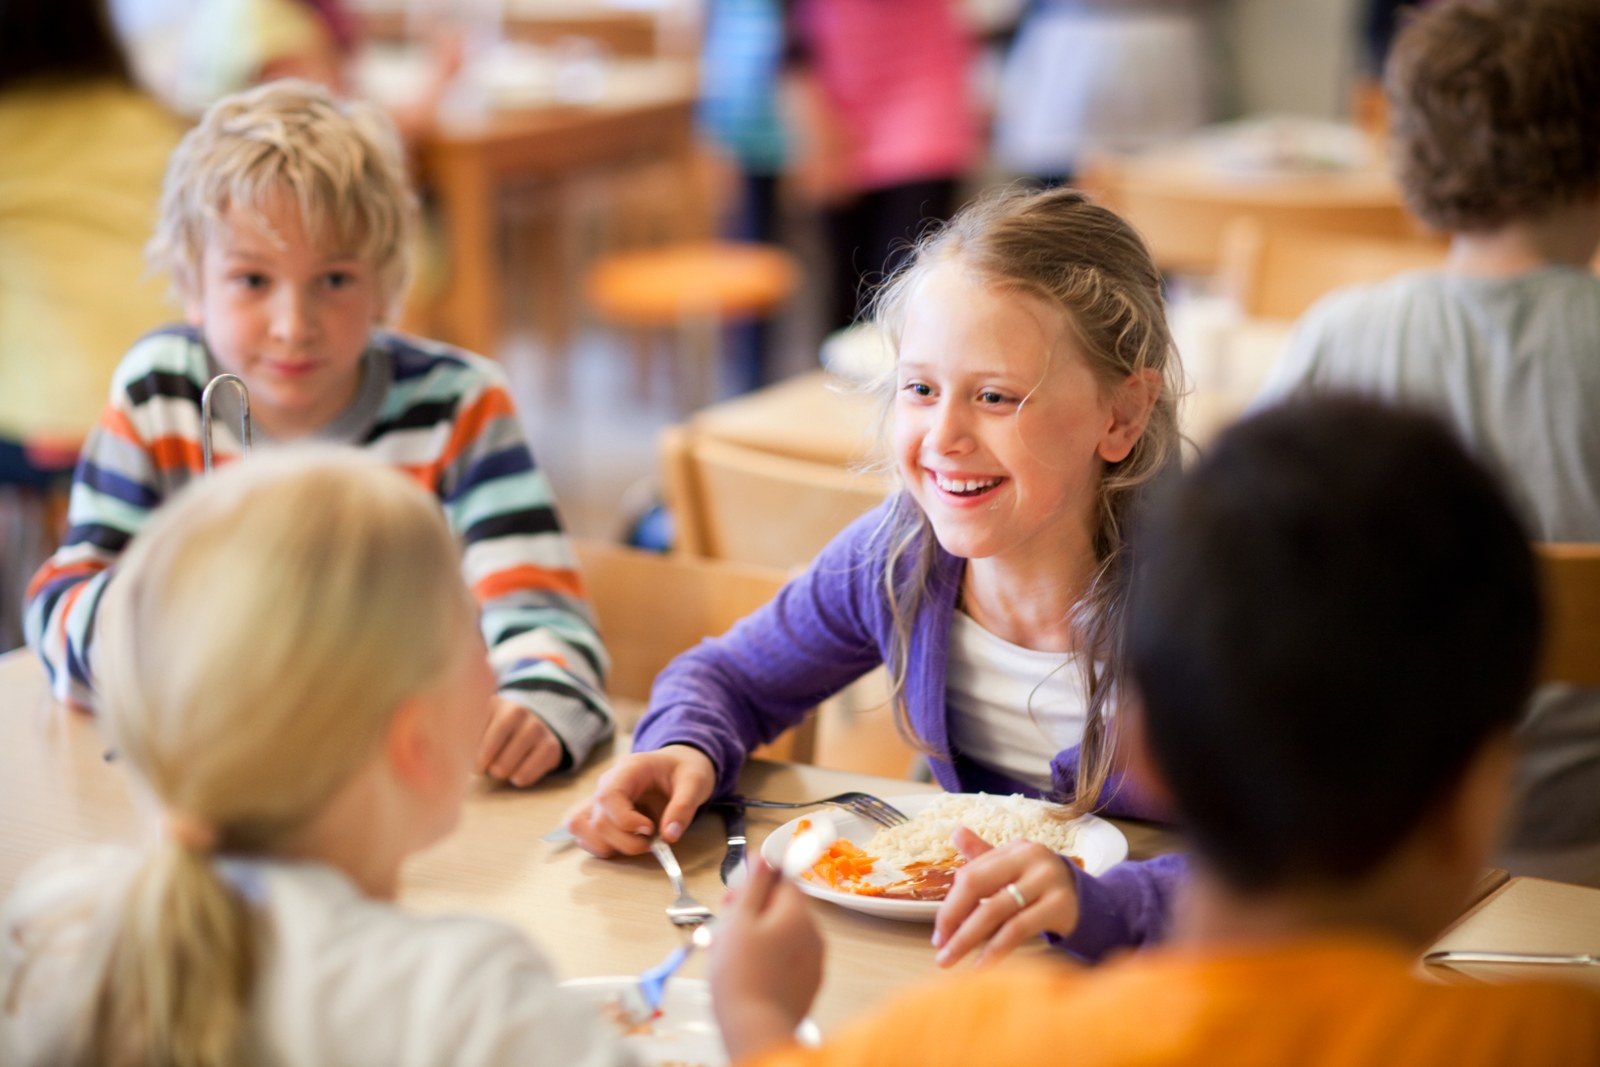 Children eating at the school diner